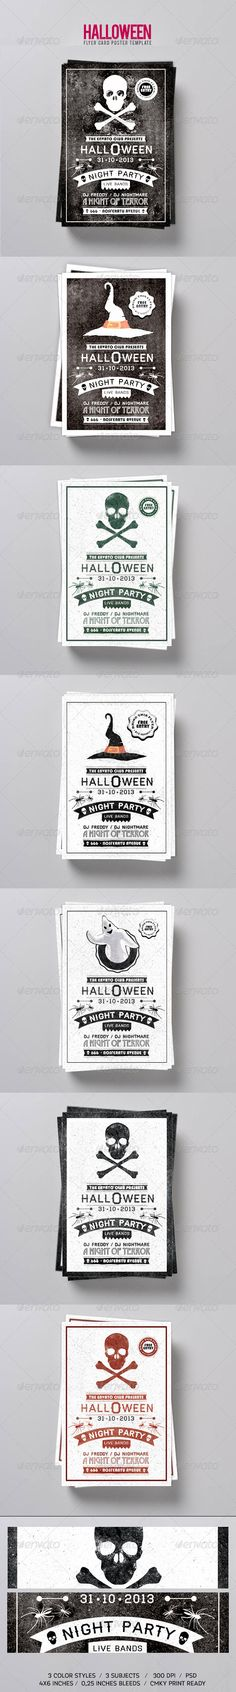 Typography Halloween Flyer #GraphicRiver Halloween Flyer/Postcard Template RE-UPLOADED This is perfect for Halloween events and invitations Free Fonts GOBLIN .fontsquirrel /fonts/goblin BAUHAUS 93 .911fonts /font/download_Bauhaus93Regular_26555.htm HAYMAKER .losttype /font/?name=haymaker FRANCHISE .dafont /franchise.font